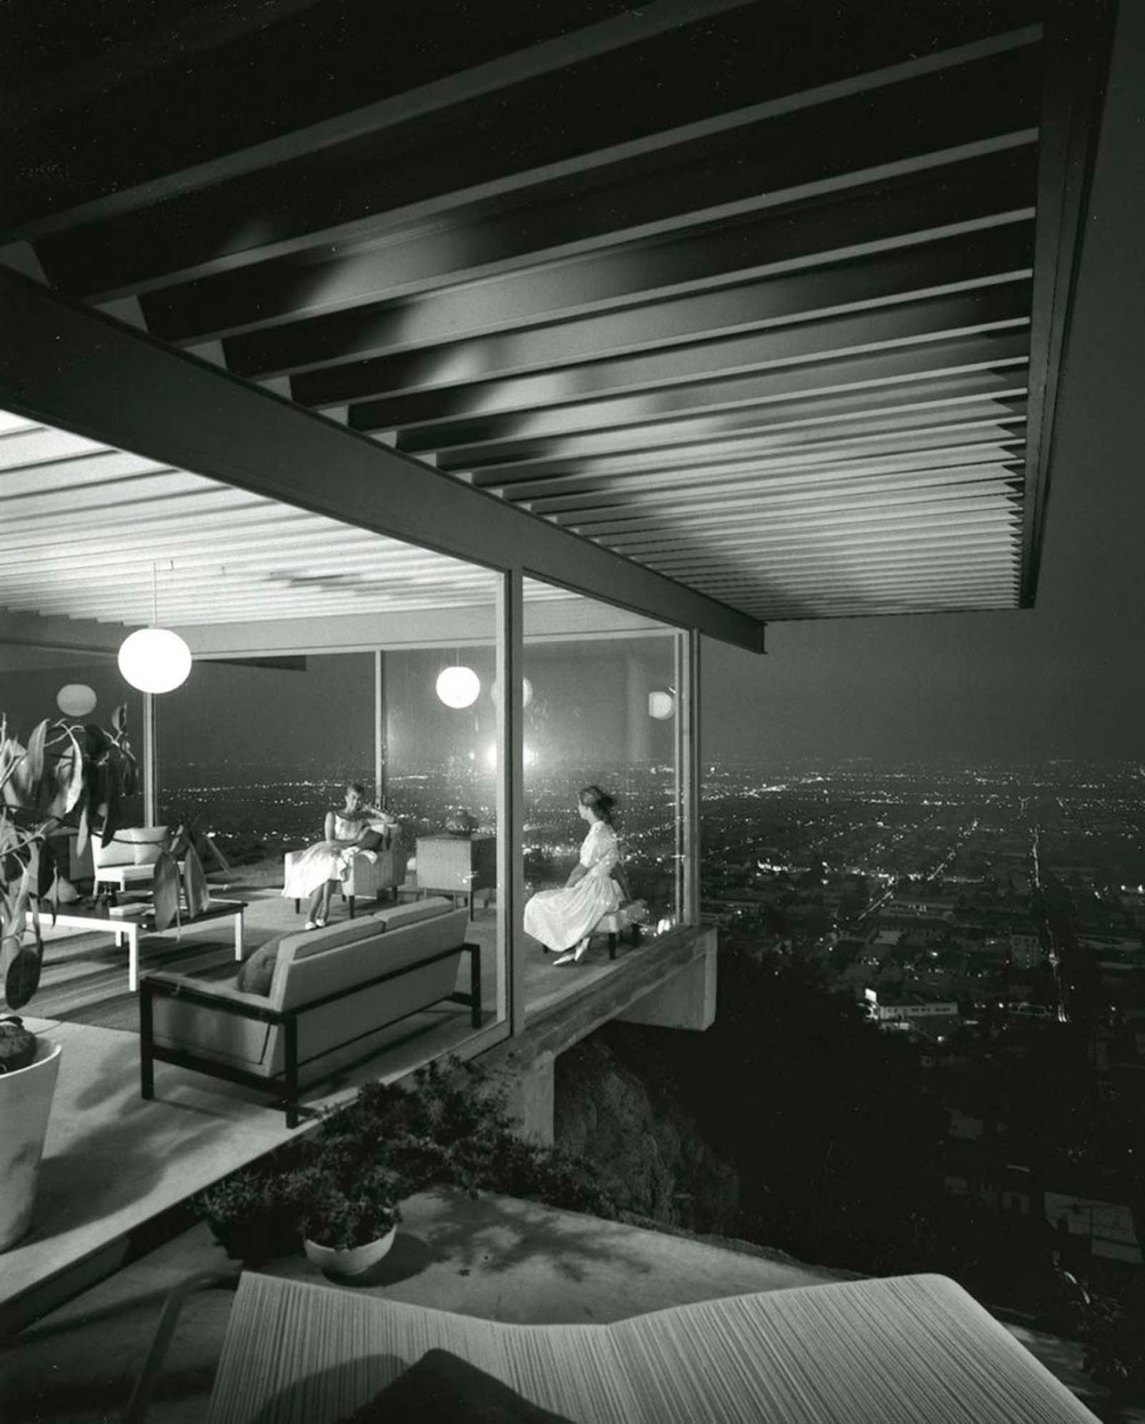 historical photos of Case Study House no. 22, Los Angeles, Julius Shulman, 1960